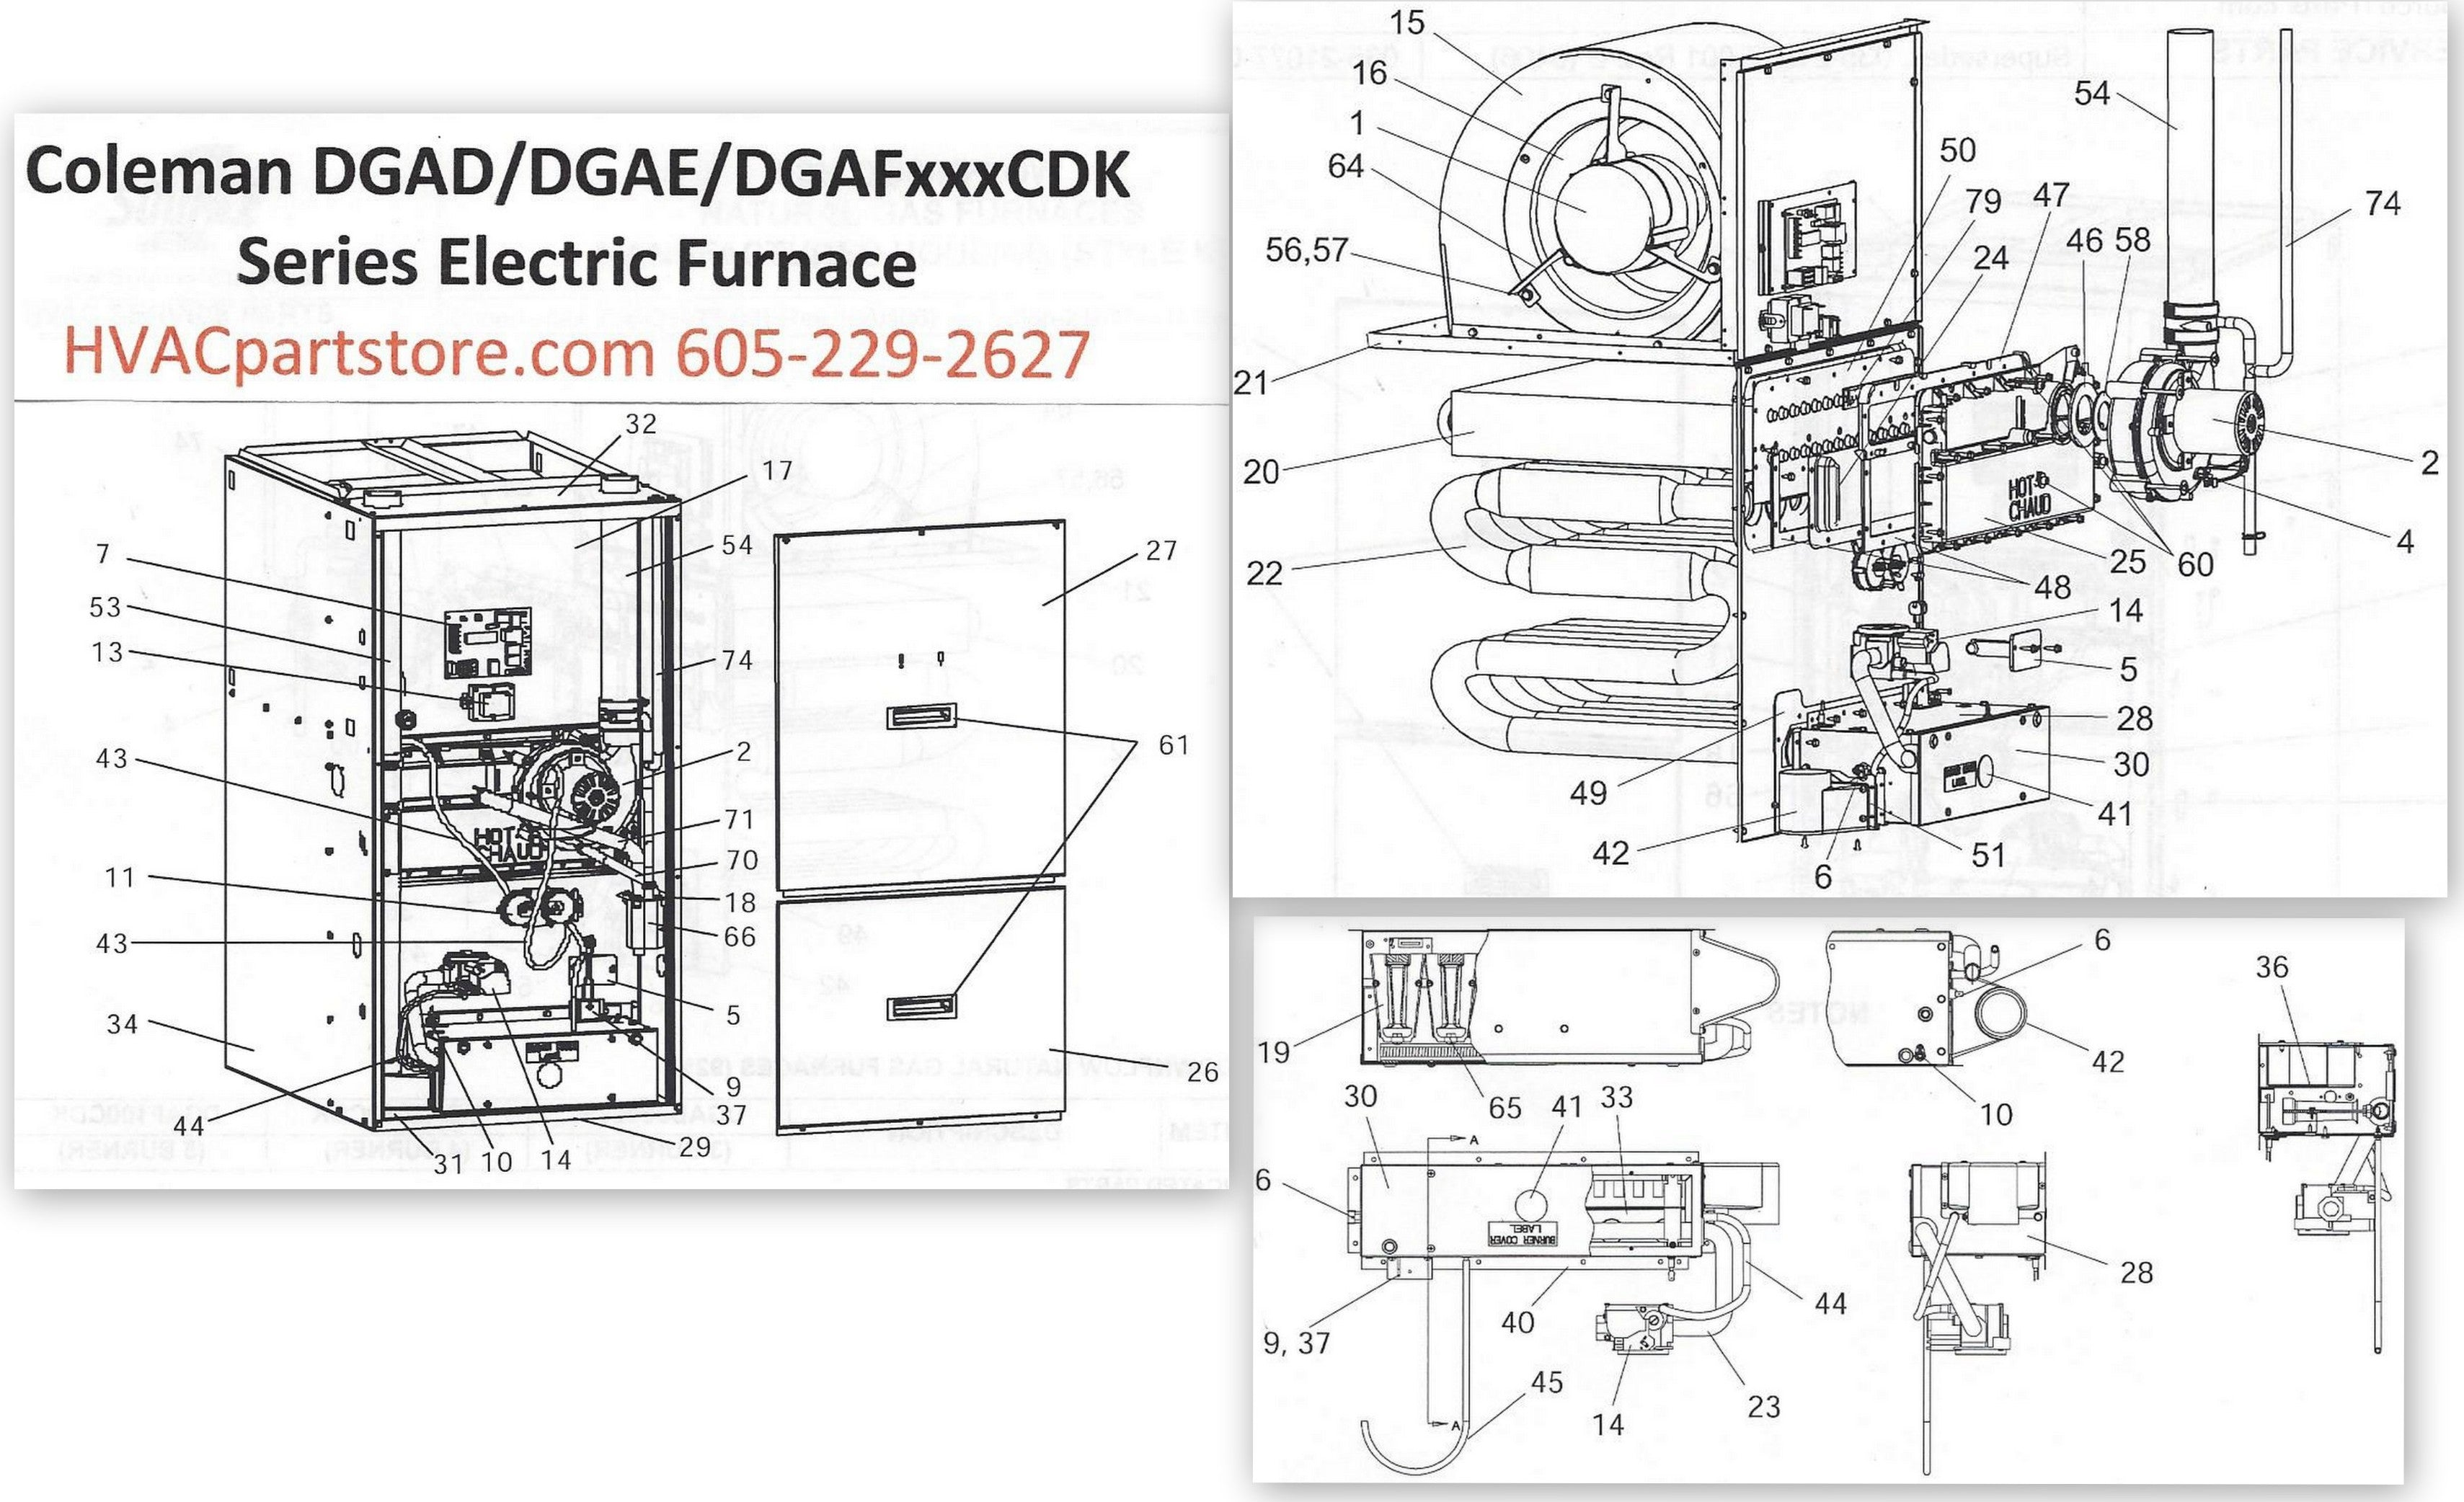 suburban rv furnace wiring diagram the wiring diagram suburban rv furnace wiring diagram vidim wiring diagram wiring diagram